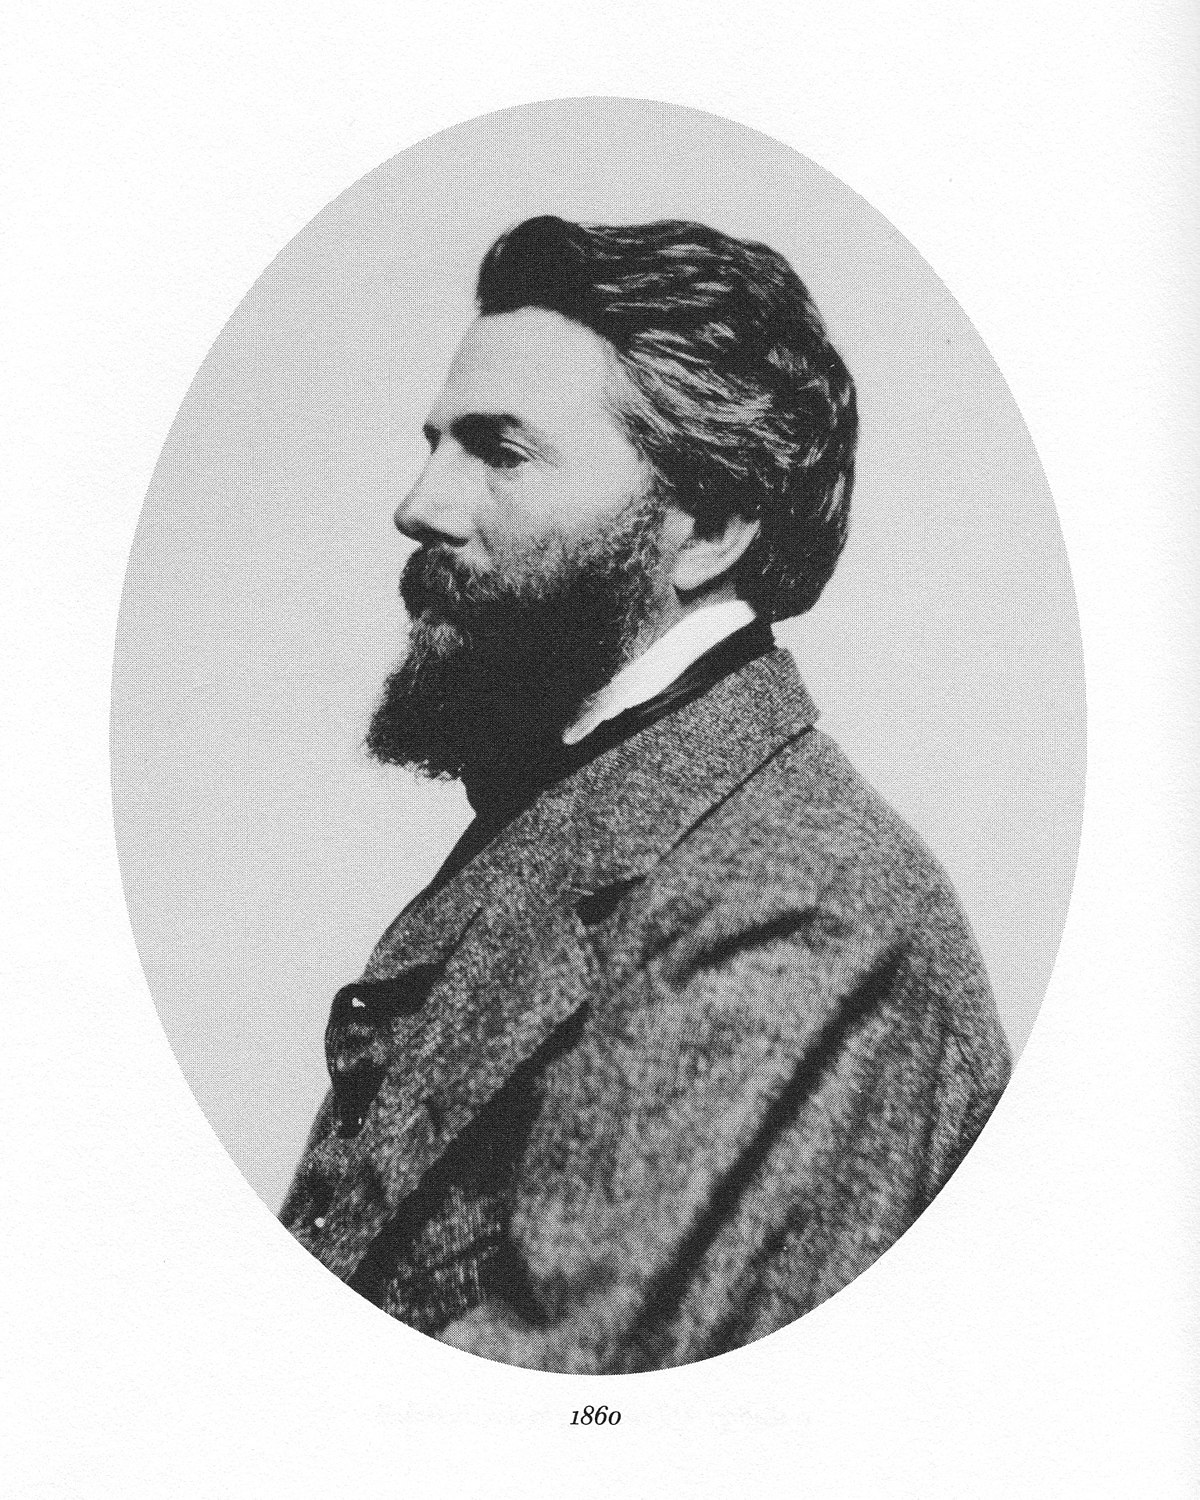 Herman Melville, being confused about which direction the camera is